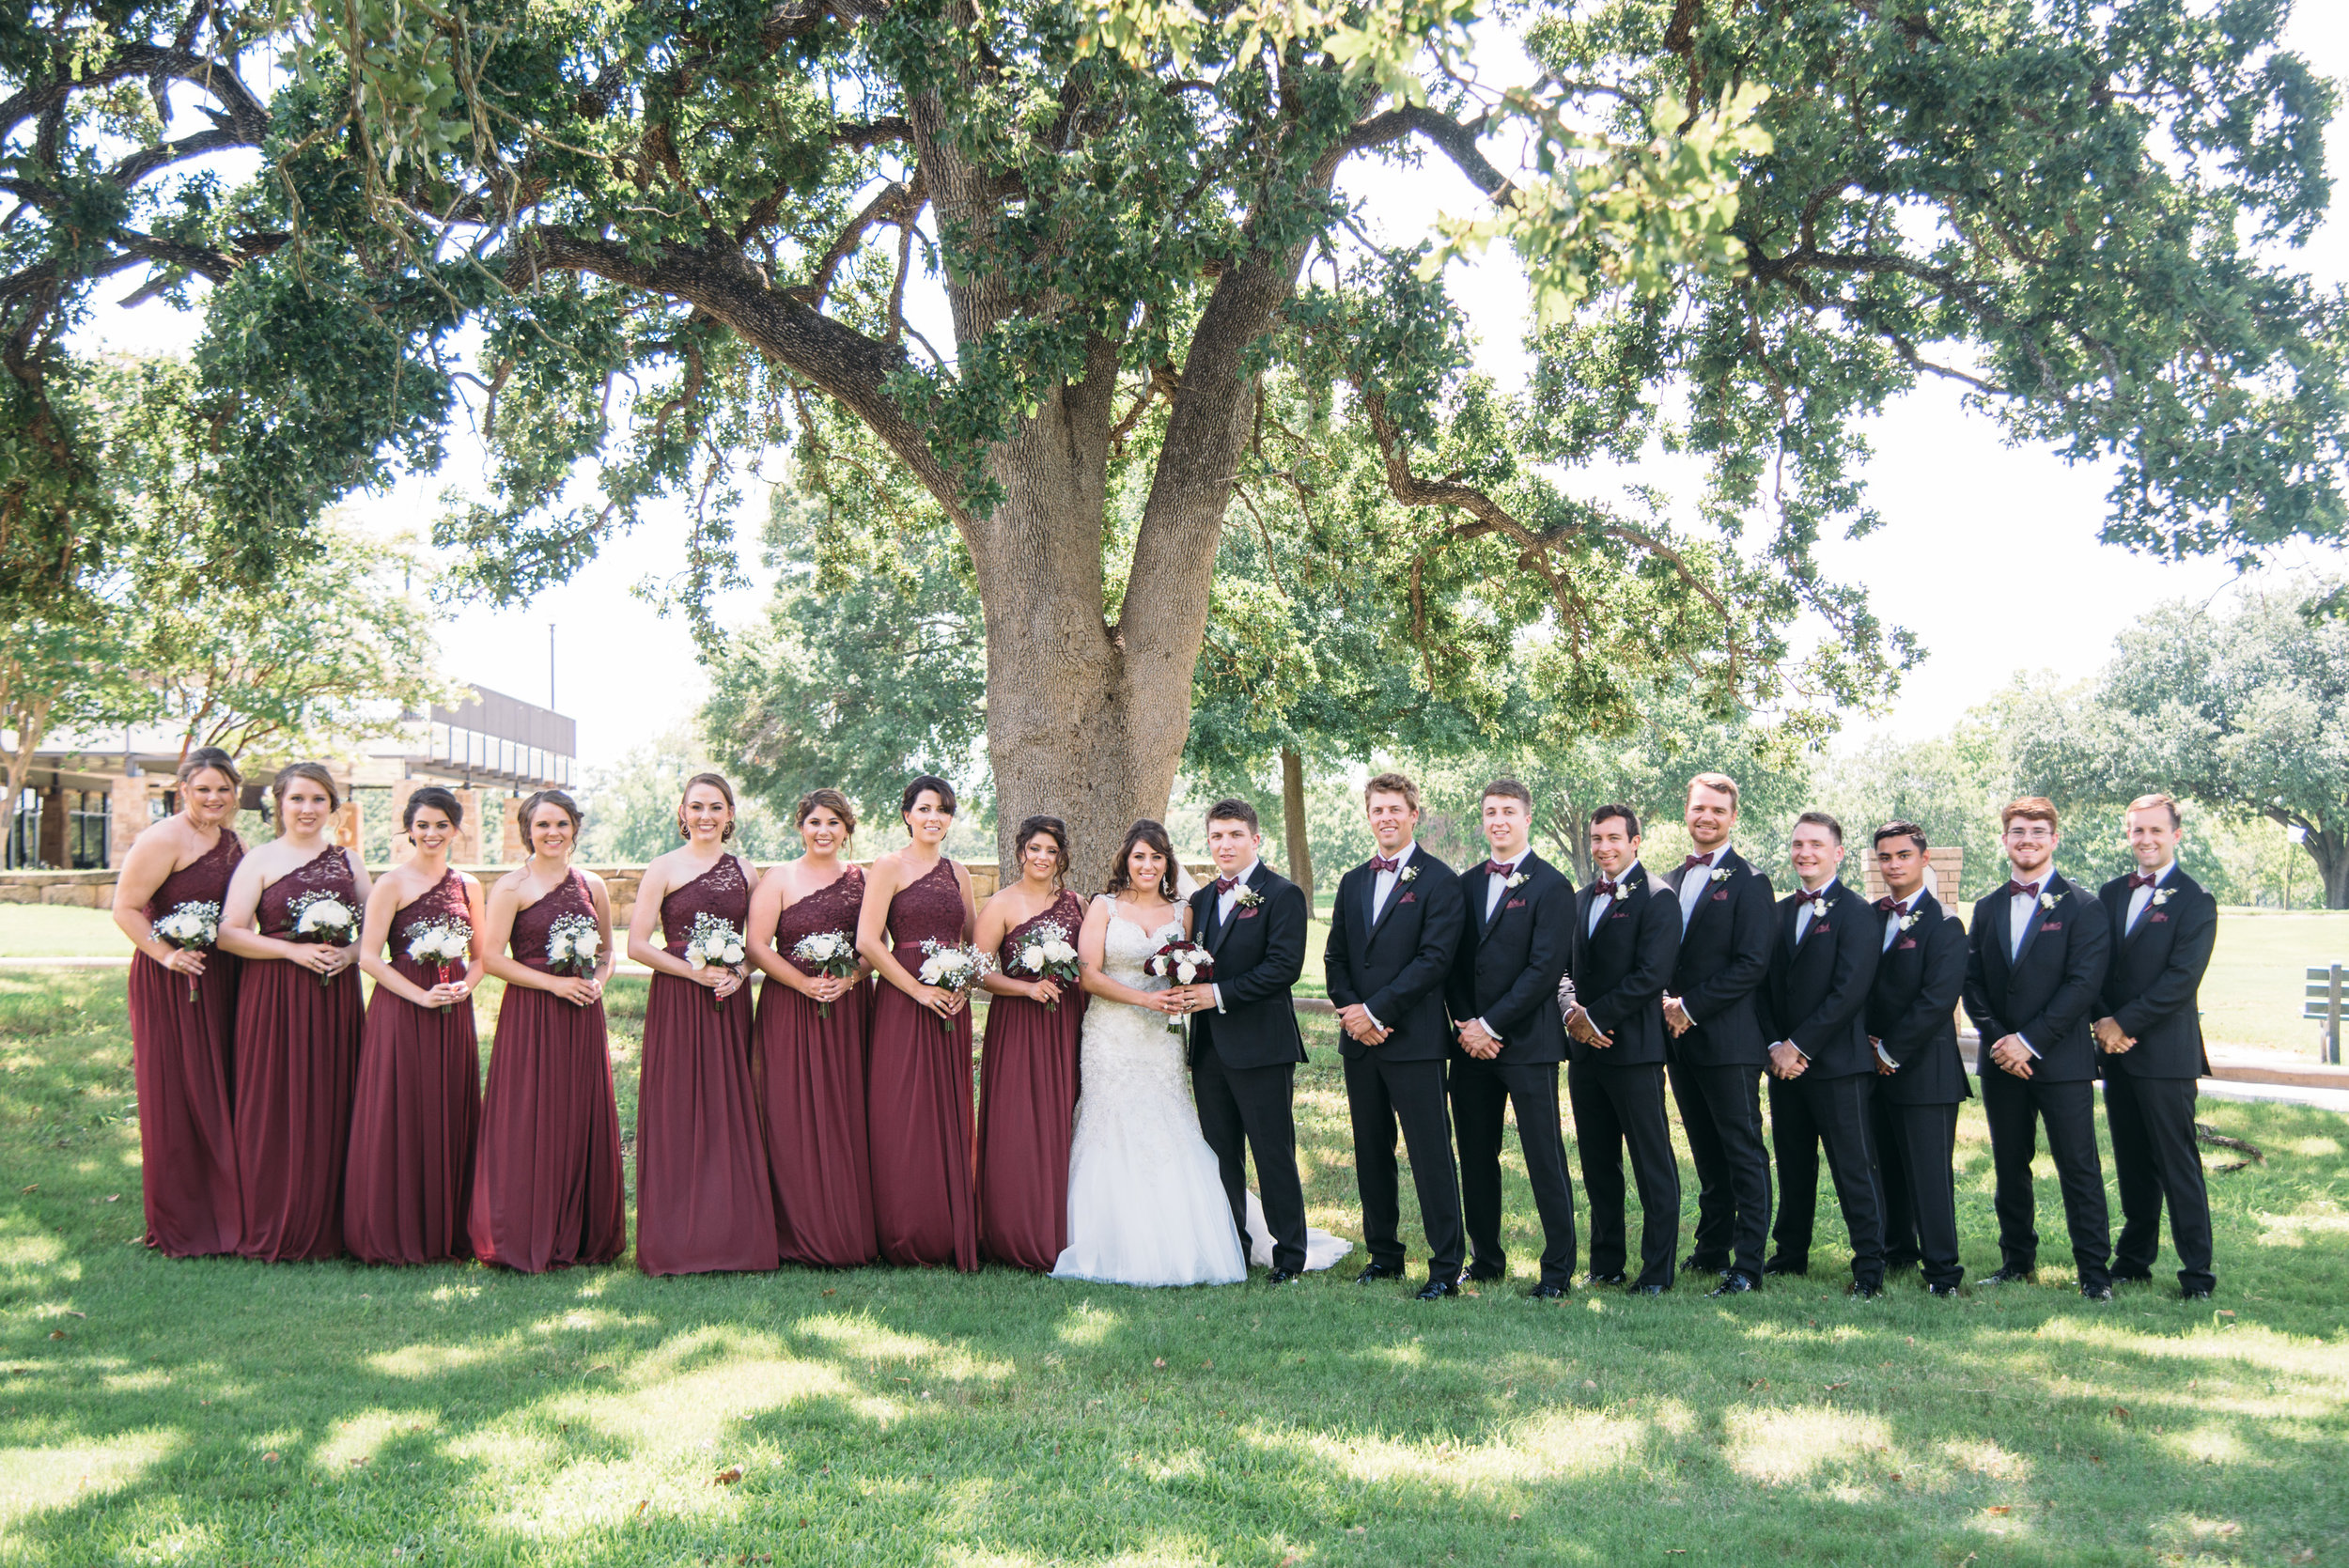 PhillipsEventCenter-AggieWedding-CollegeStationPhotographer_23.jpg